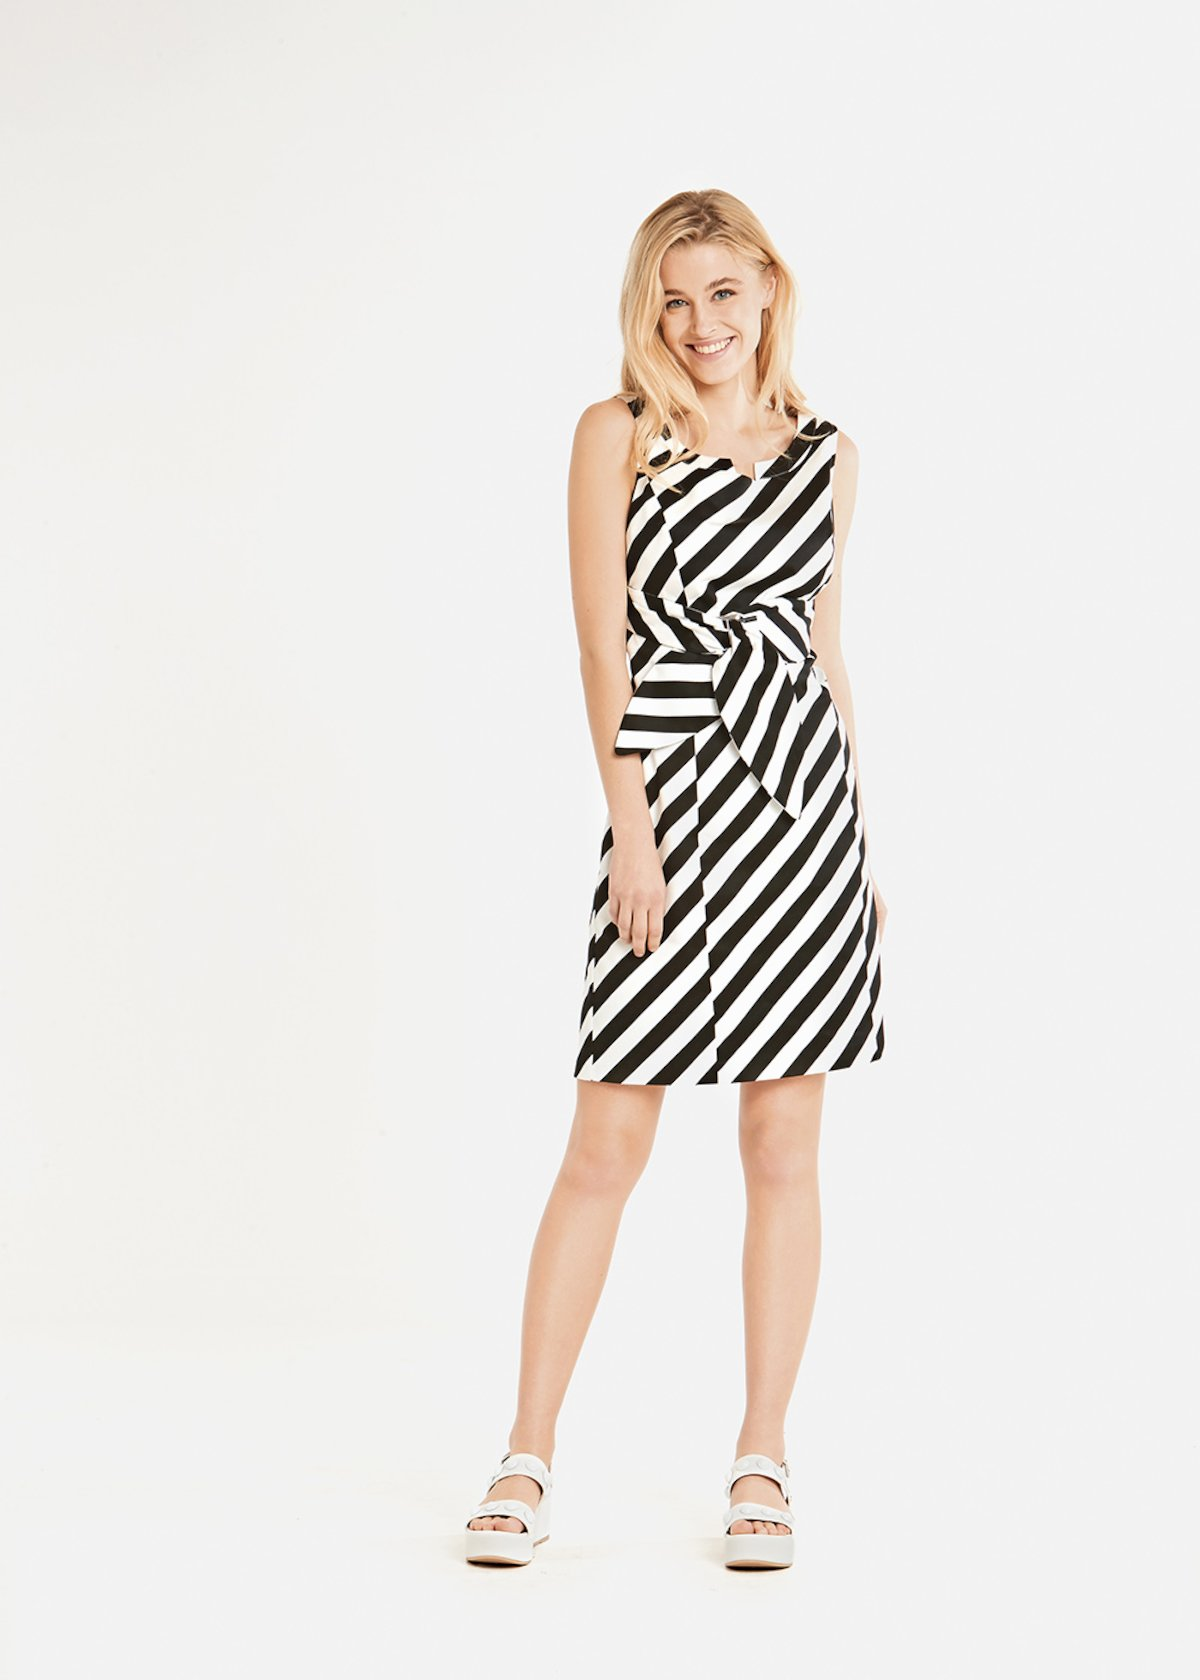 Audrey stripes patterned dress with belt effect